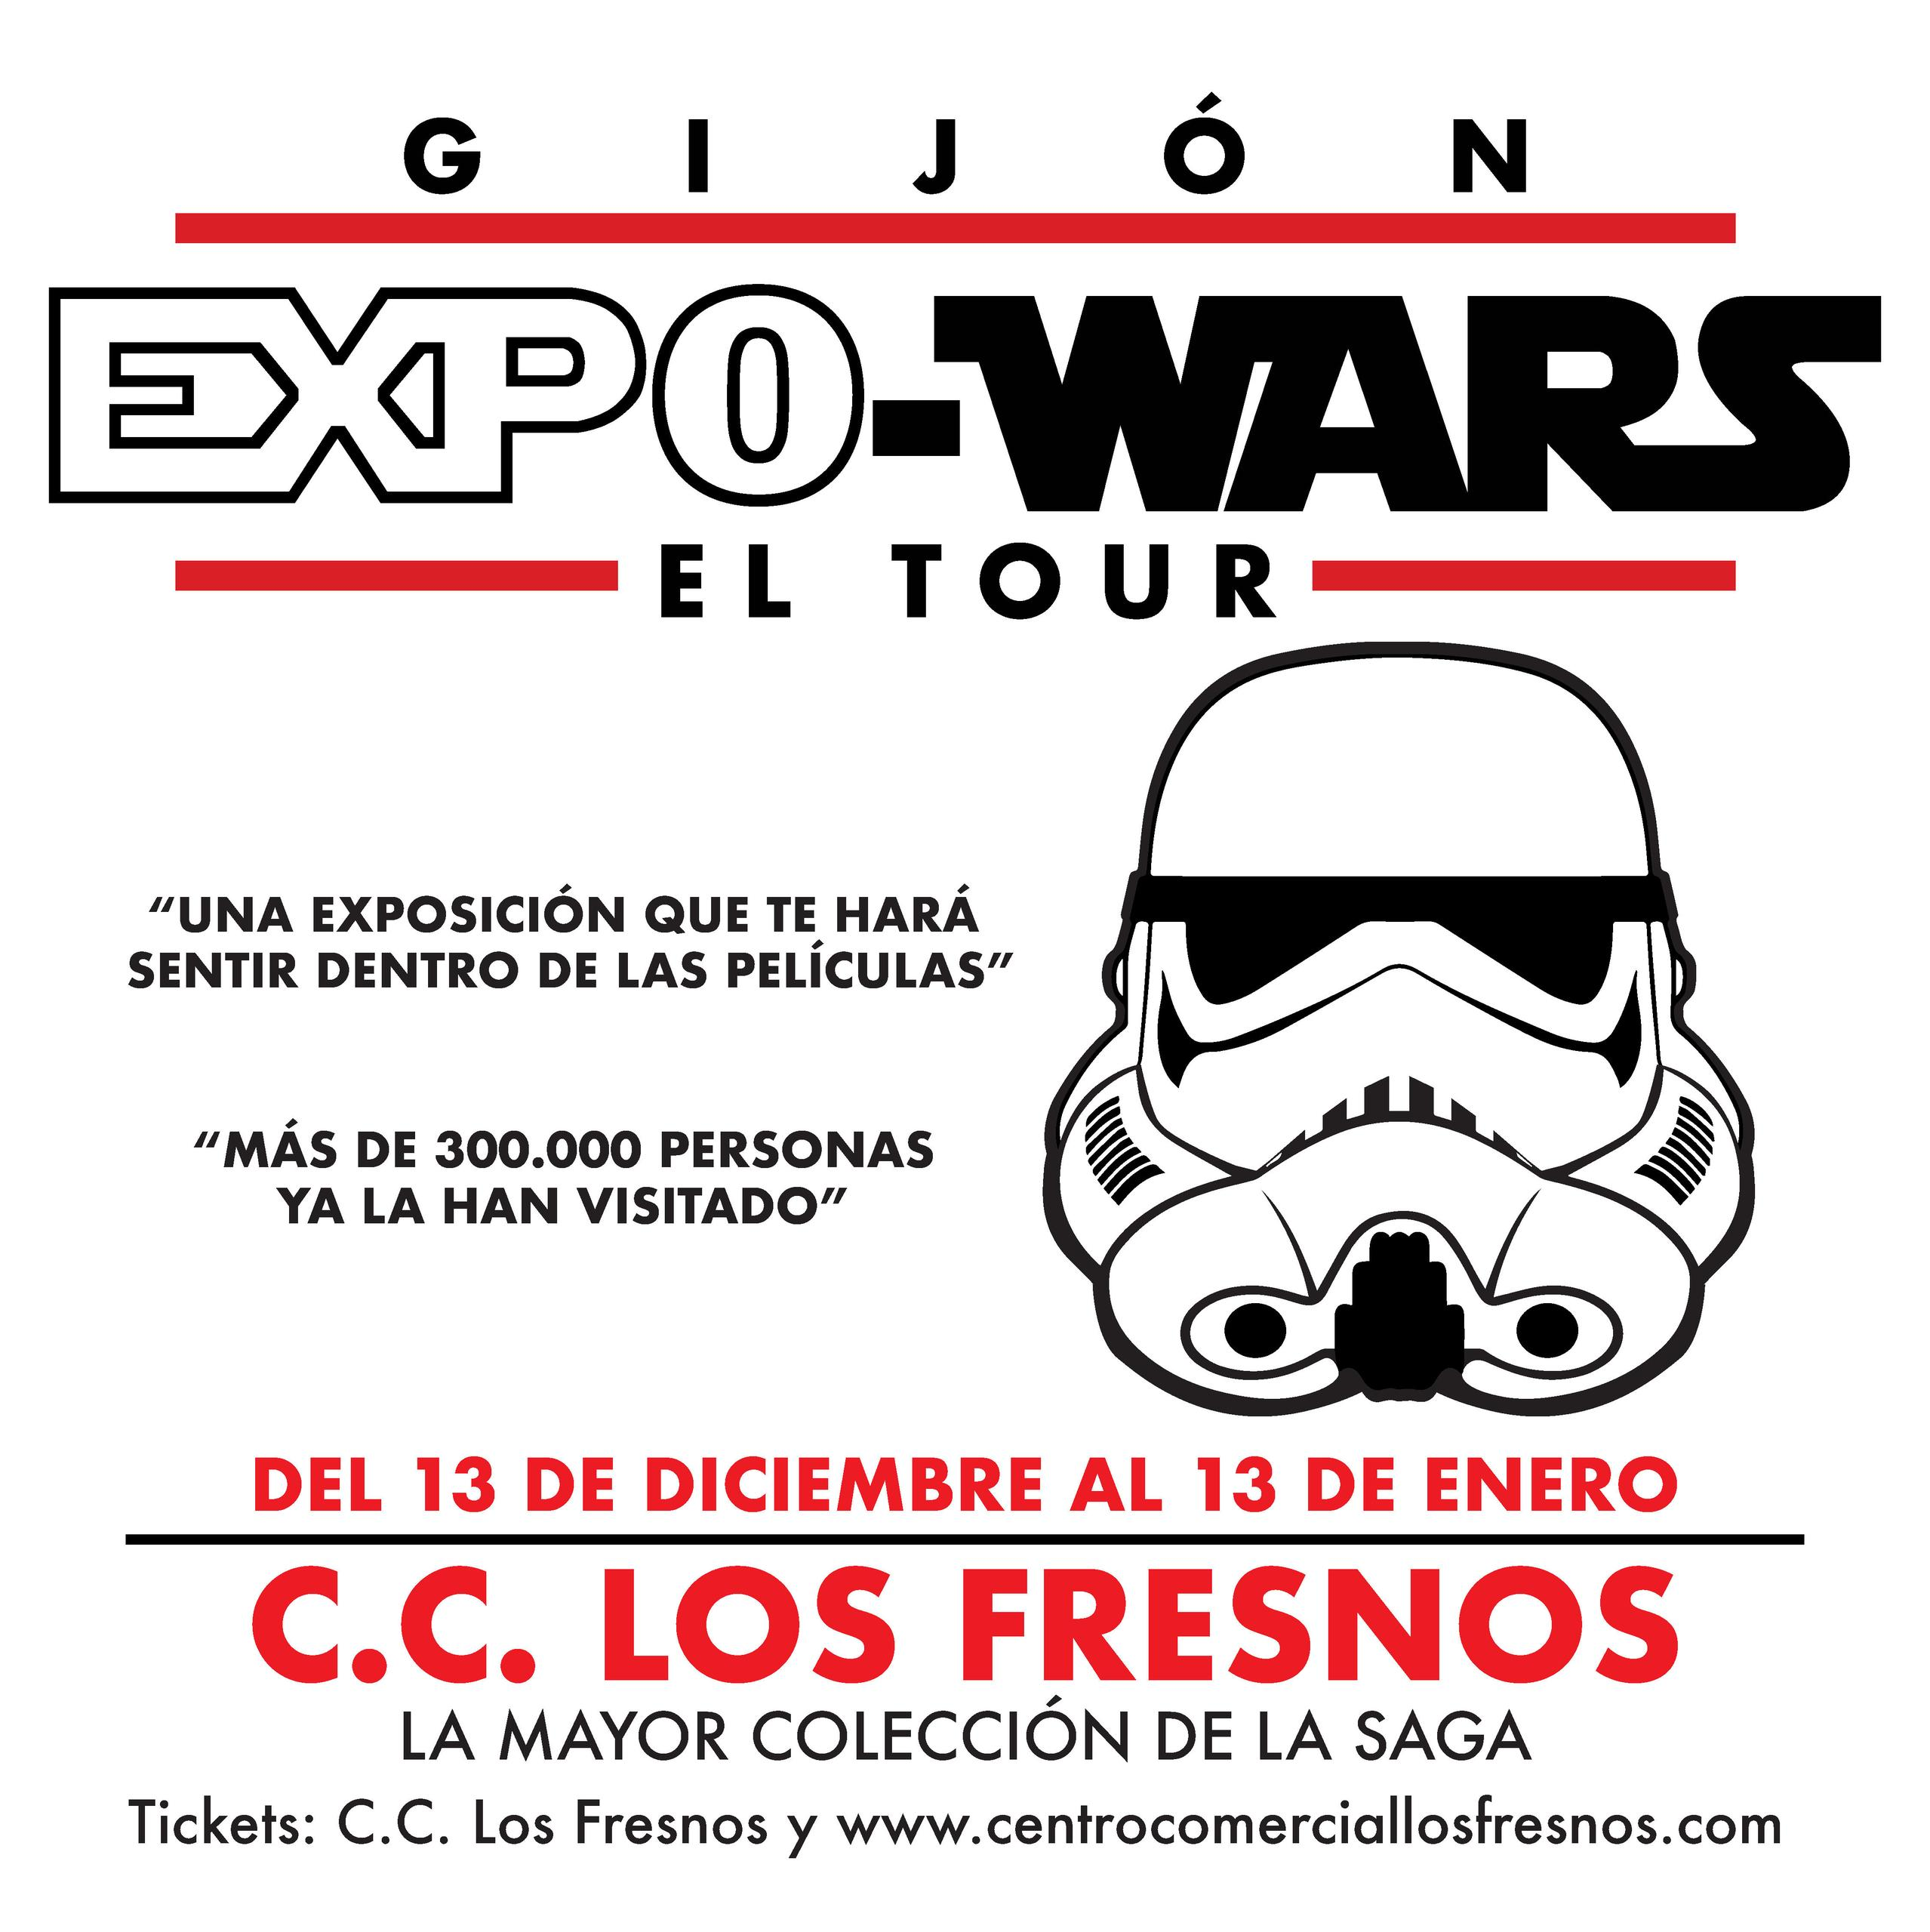 expo wars